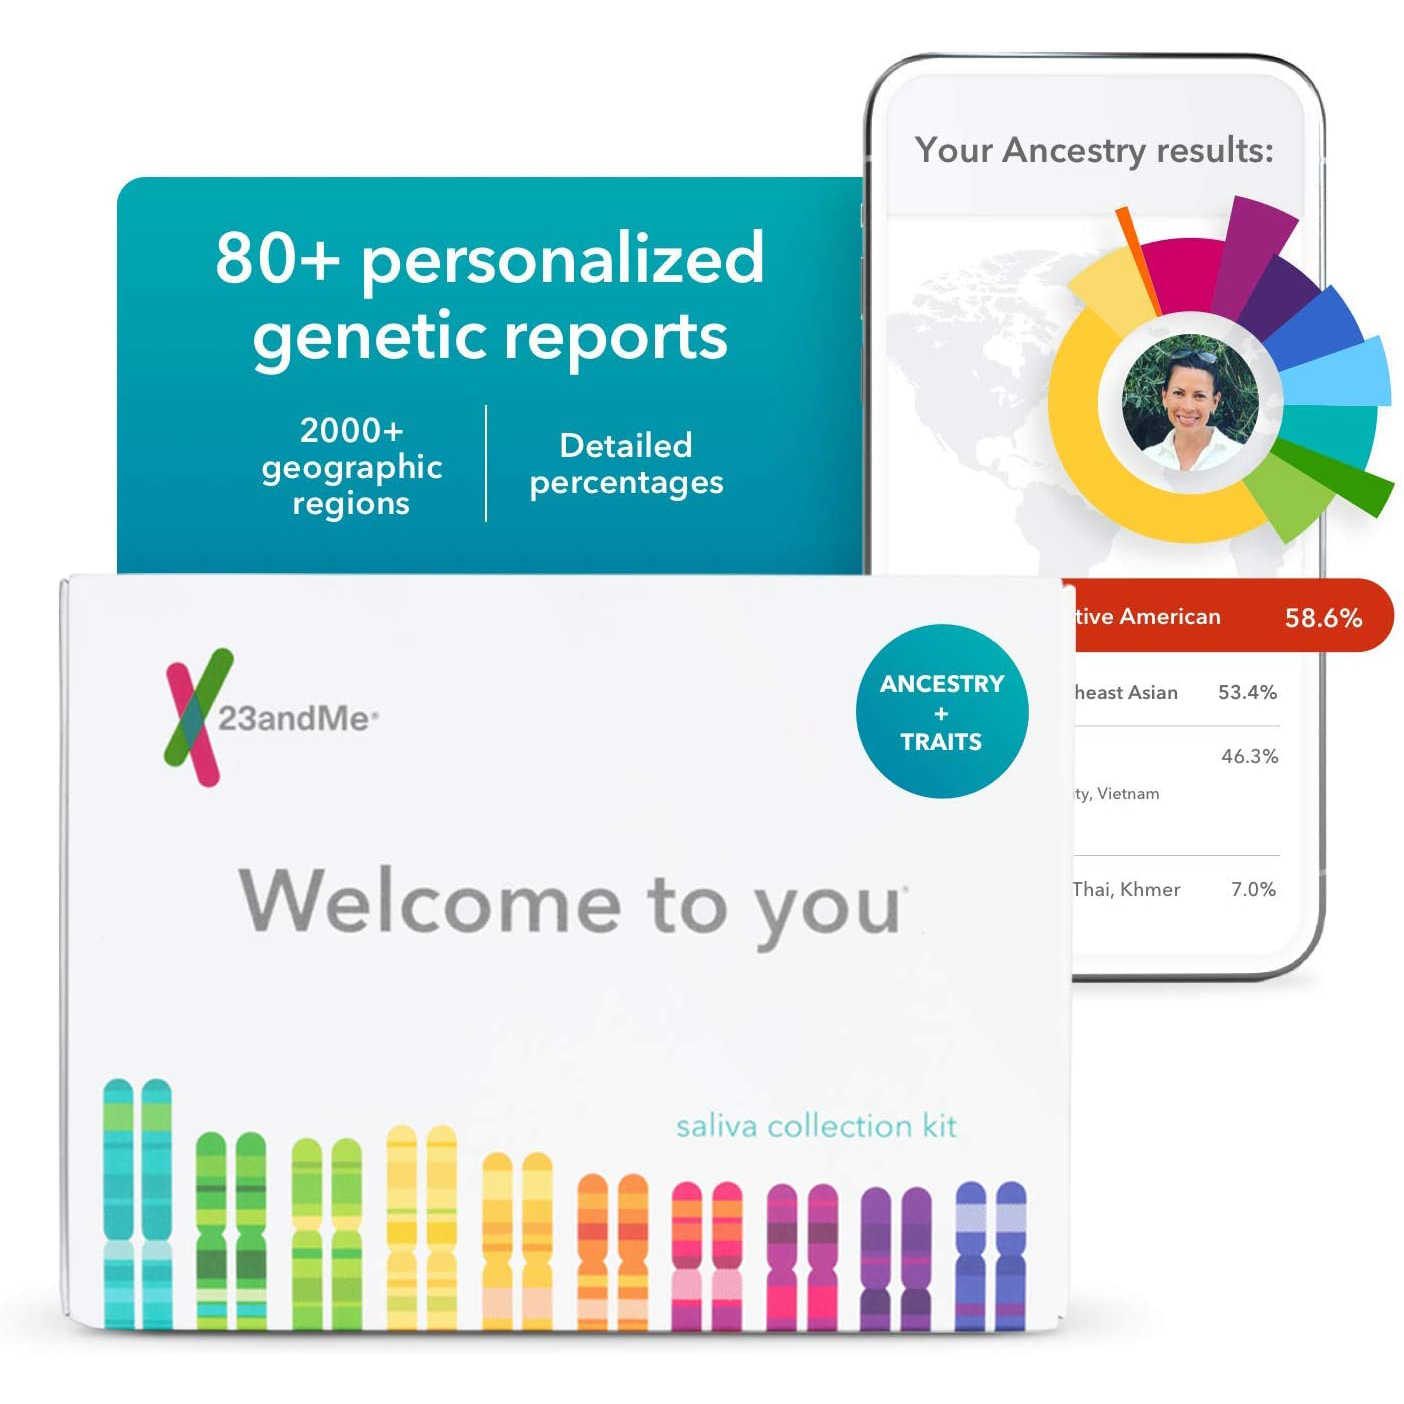 23andMe Ancestry + Traits Service